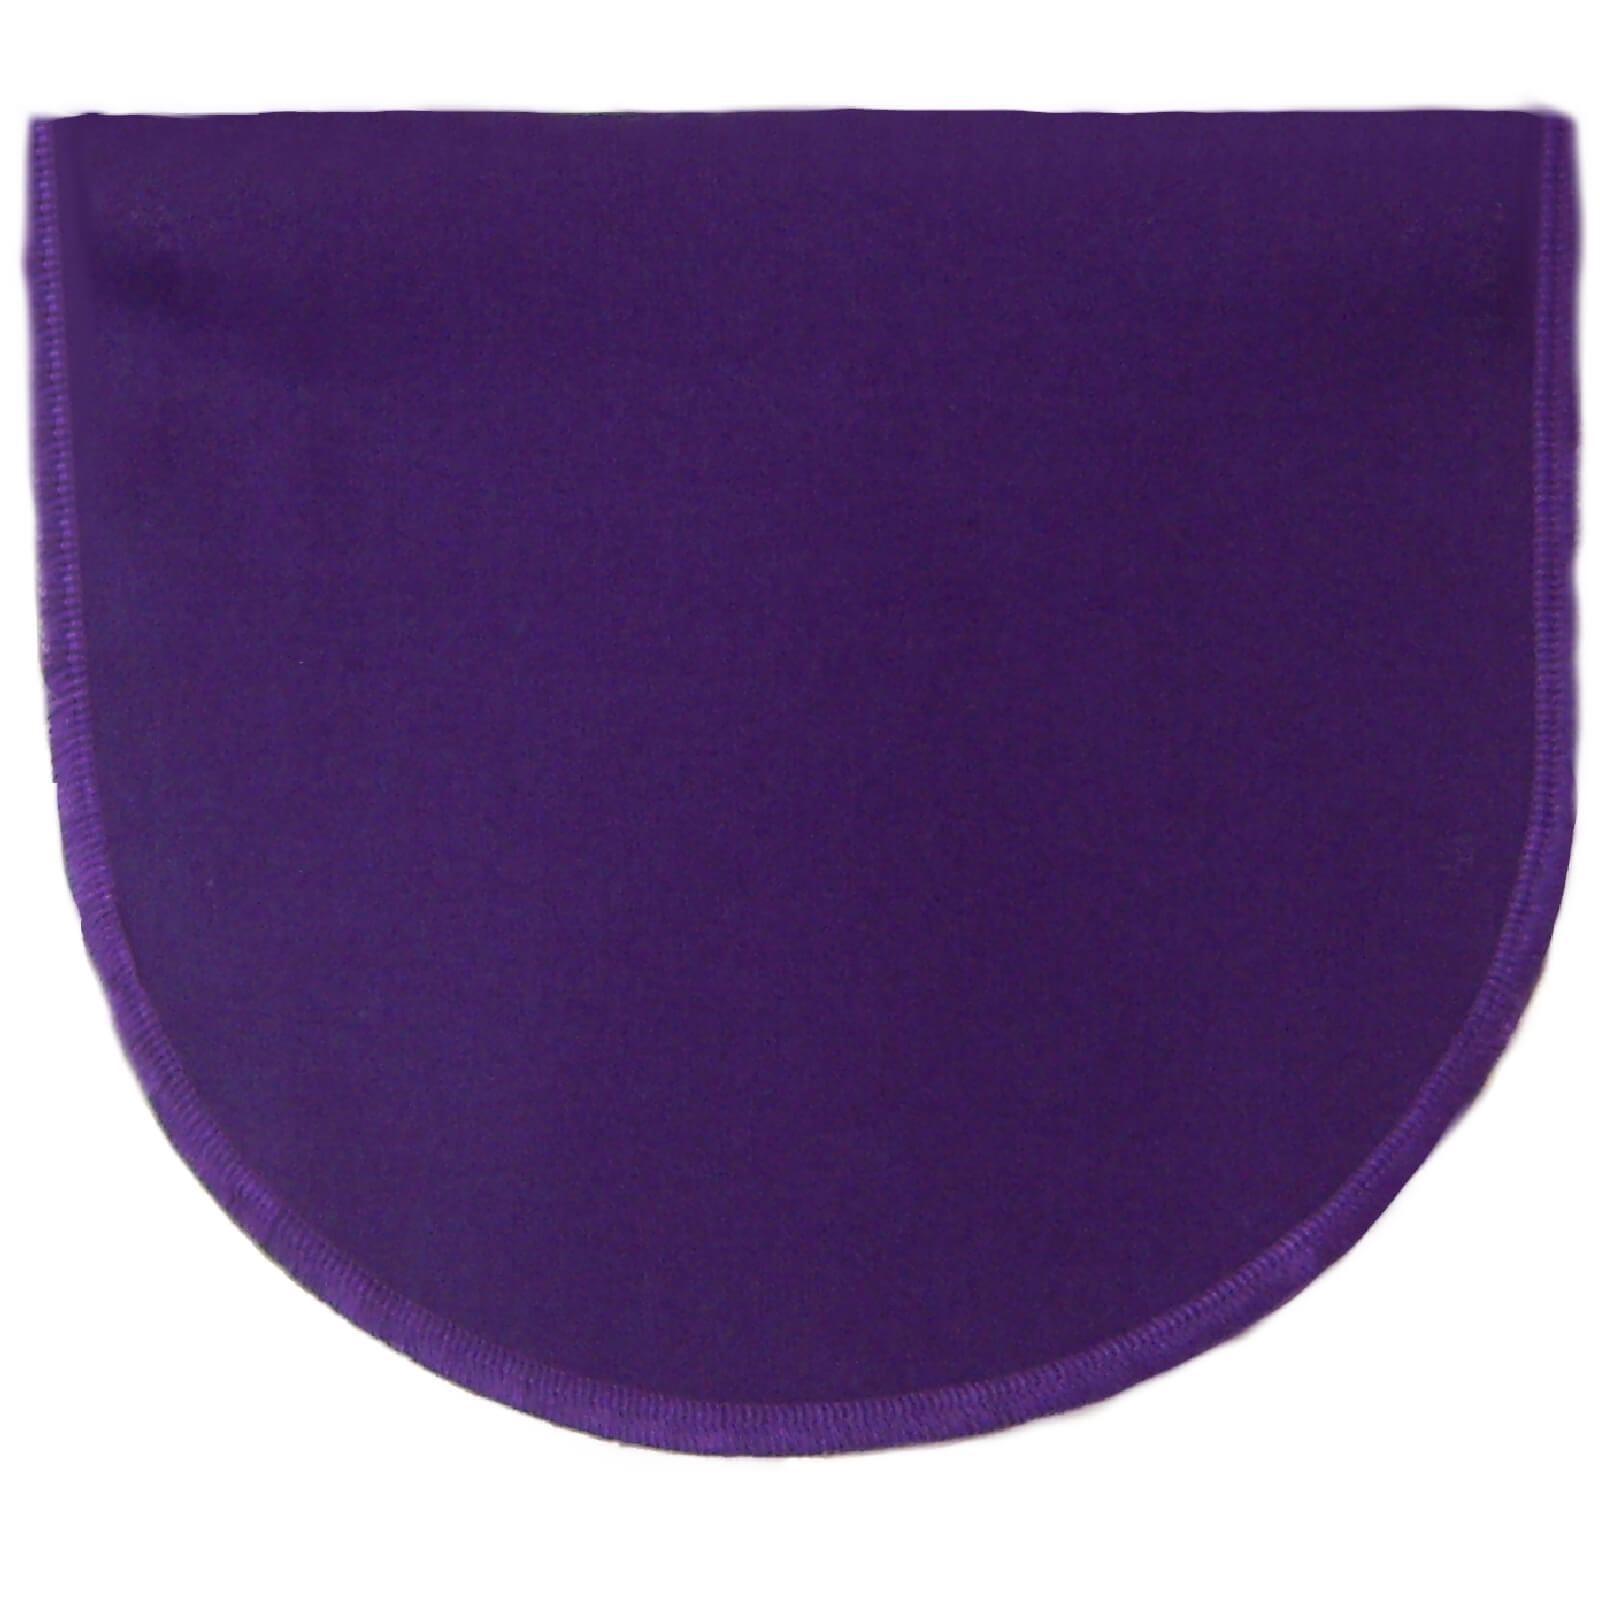 Purple Cotton Cleavage Cover